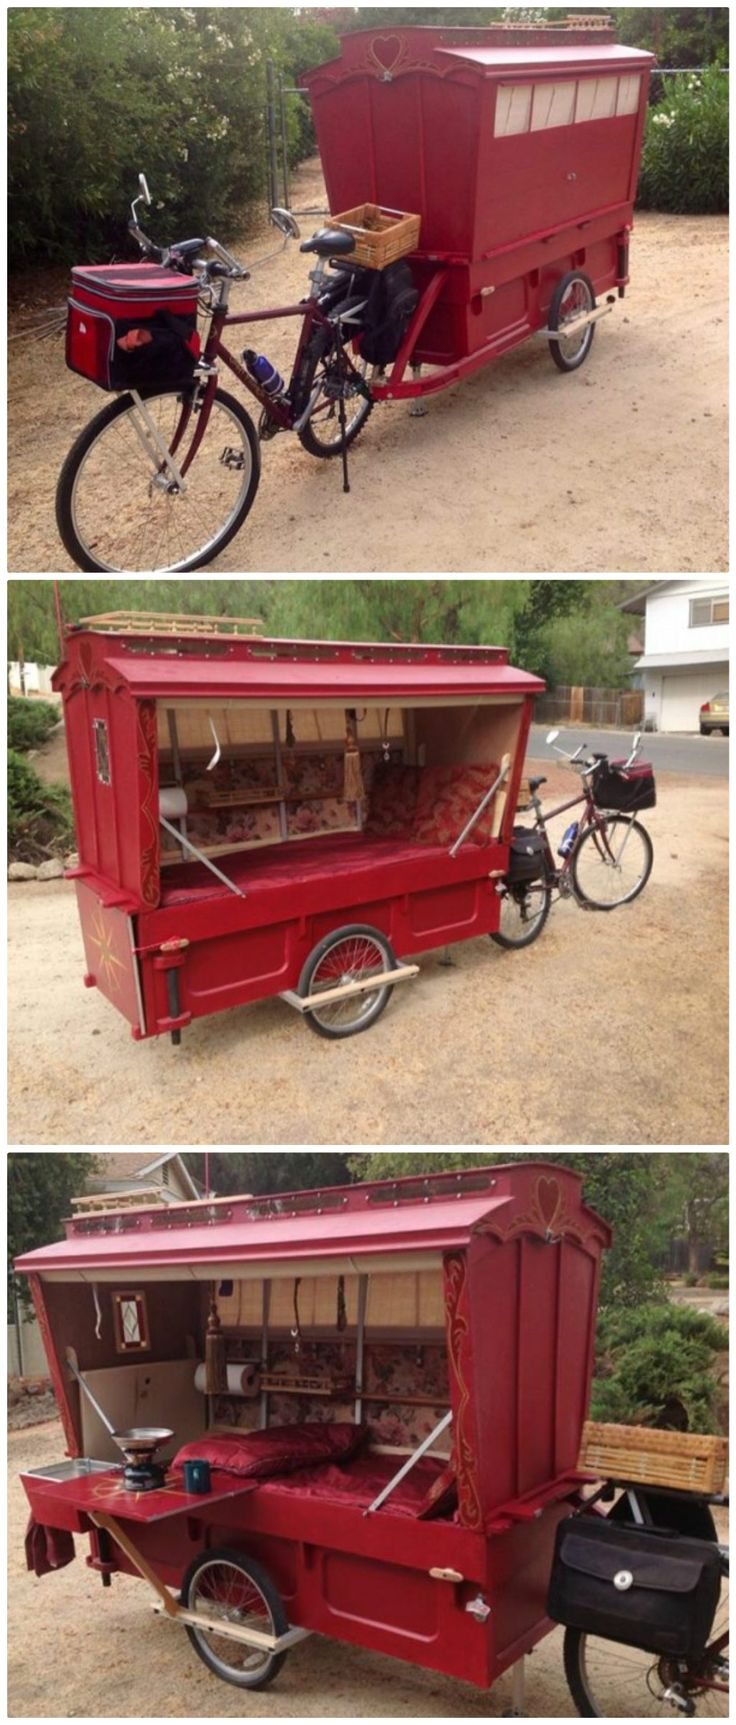 Artist built a micro gypsy wagon you can tow with your bike! More on FB: https://www.facebook.com/barryhowardstudio/media_set?set=a.10200534725463820.1073741826.1028749845&type=3